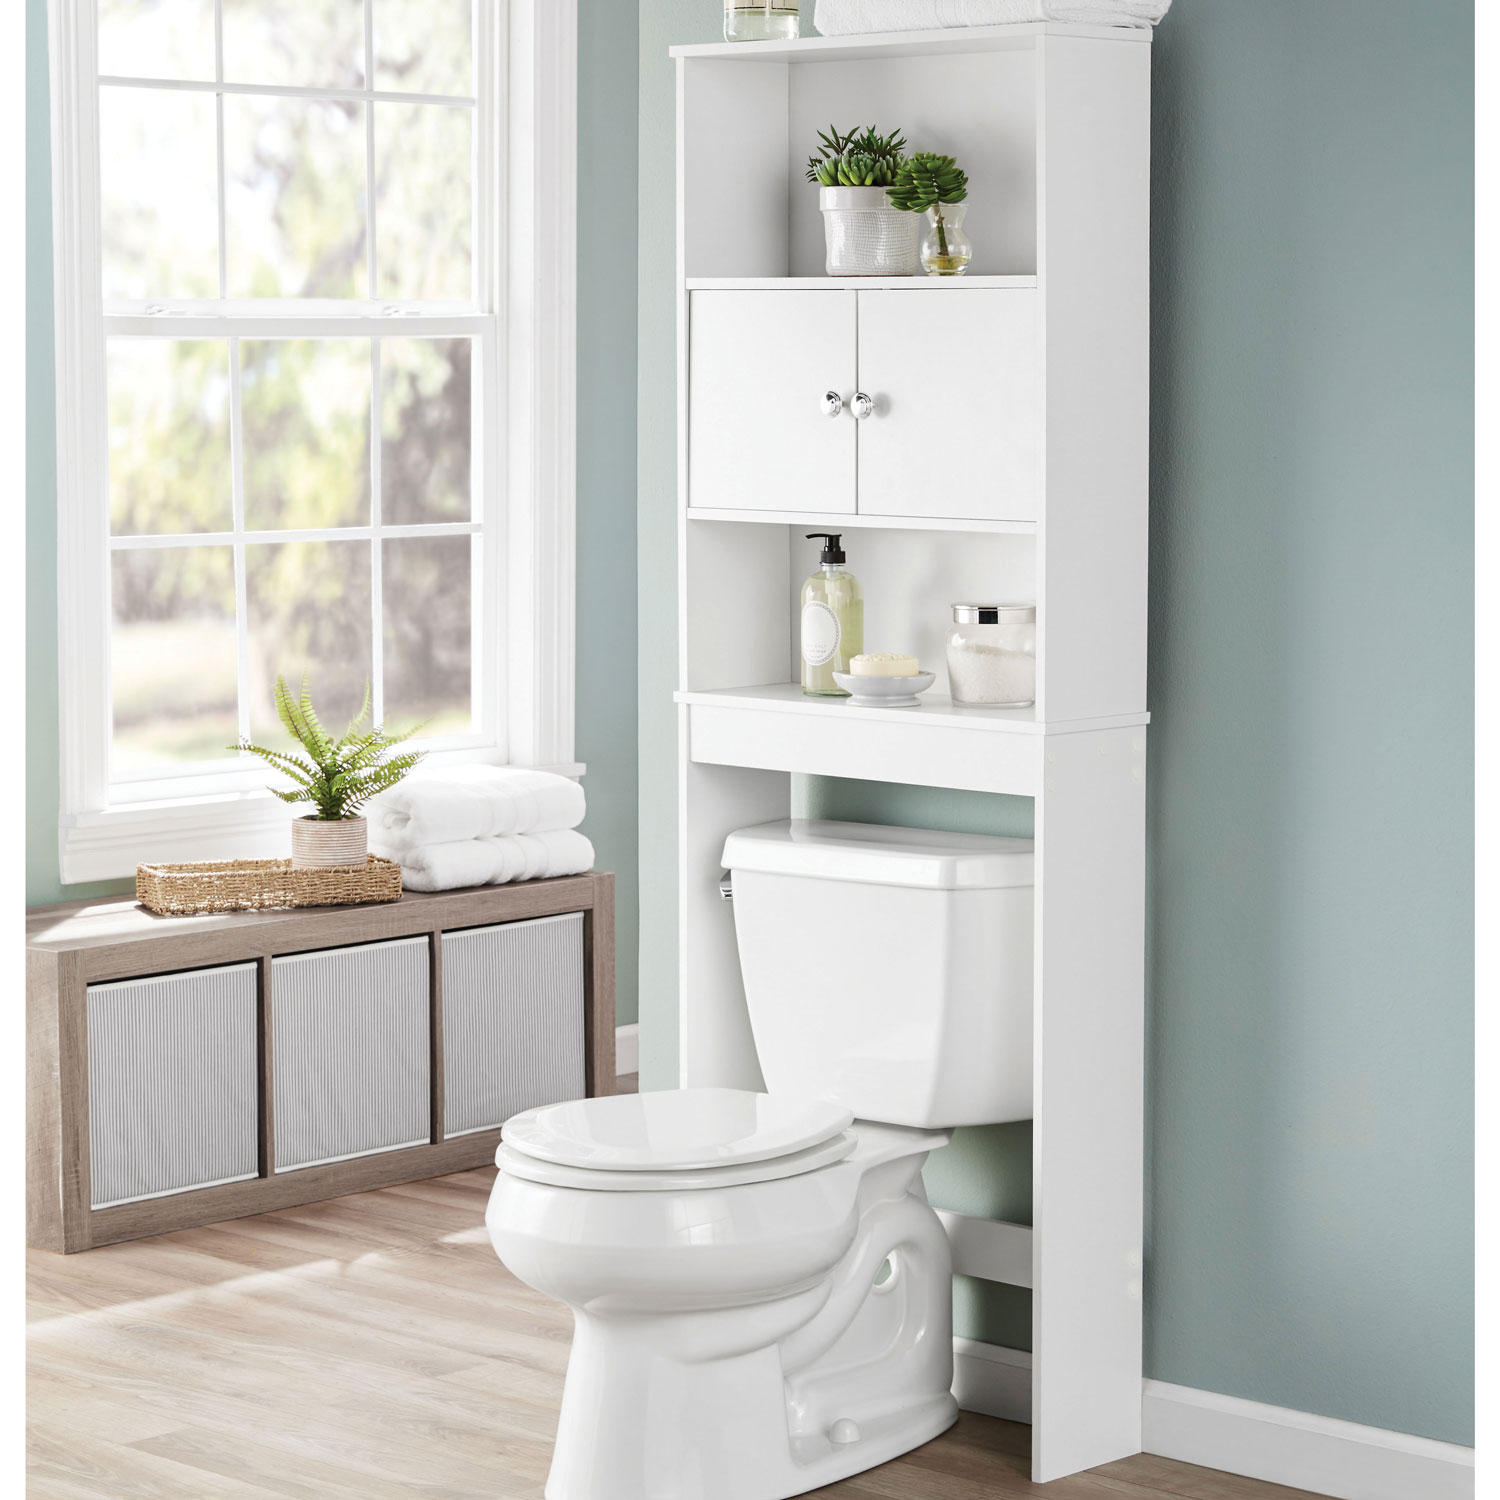 Awe Inspiring Details About Bathroom Storage White Over The Toilet Space Saver 3 Shelves Cabinet Doors Wood Caraccident5 Cool Chair Designs And Ideas Caraccident5Info